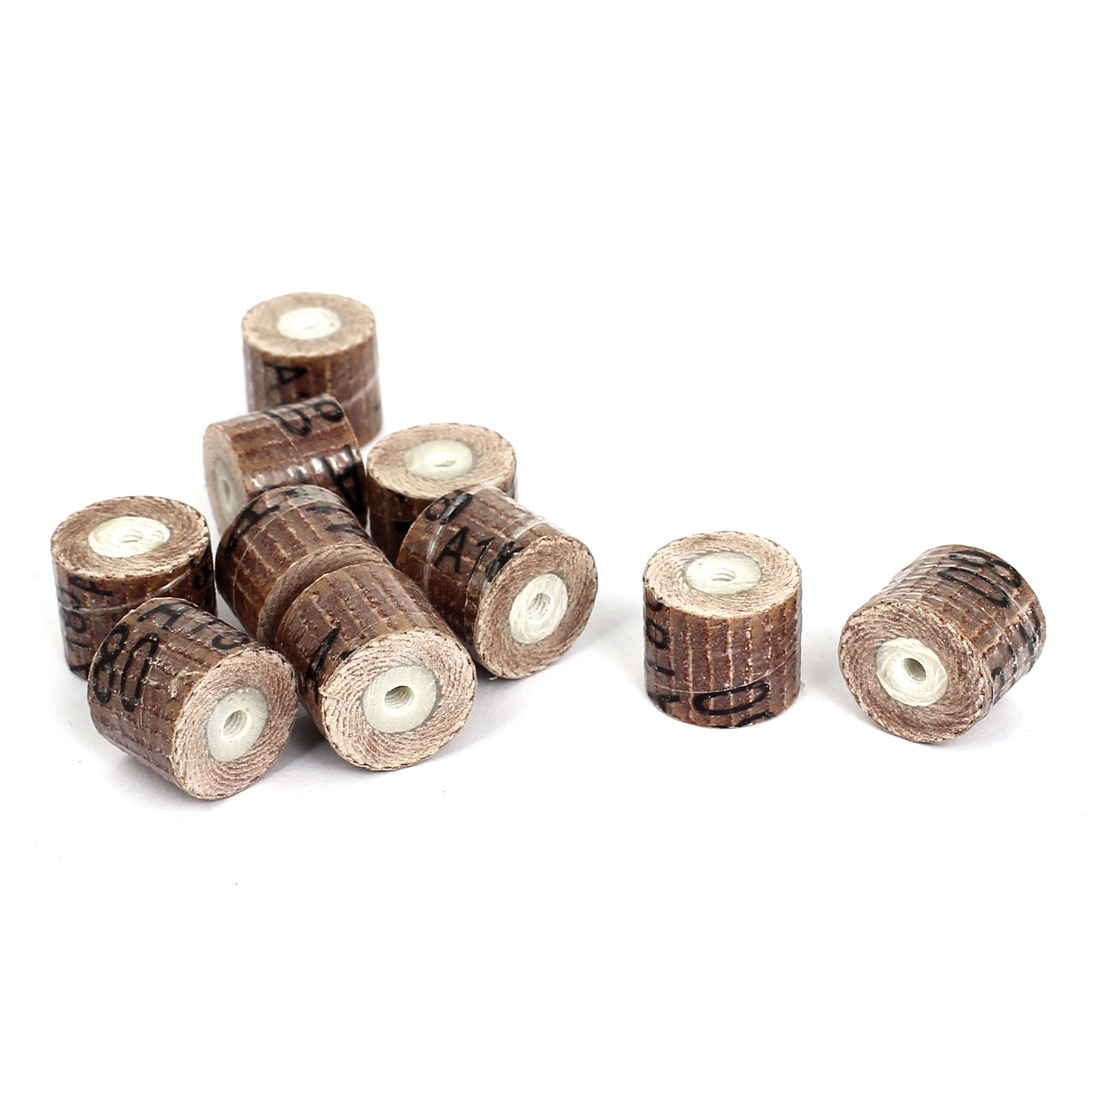 10 Pcs 180 Grit 3mm Mandrel Flap Wheel Grinding Heads 14mmx12mm for Rotary Tools